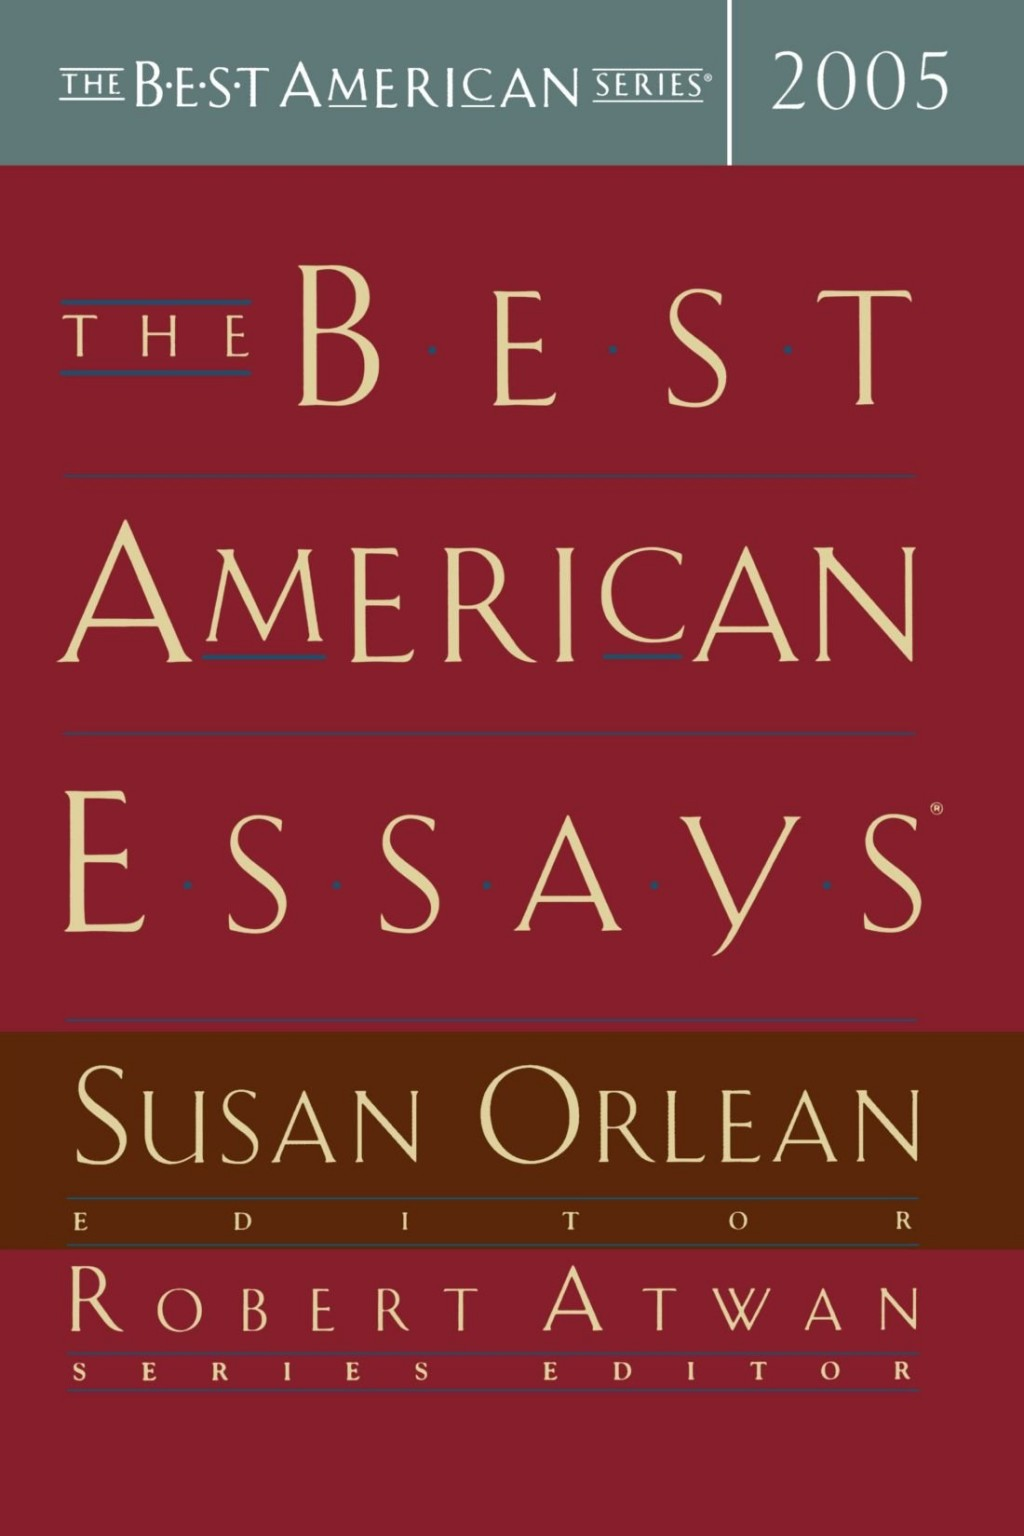 009 Essay Example 61eba7rjfxl The Best American Wonderful Essays 2018 Pdf 2017 Table Of Contents 2015 Free Large